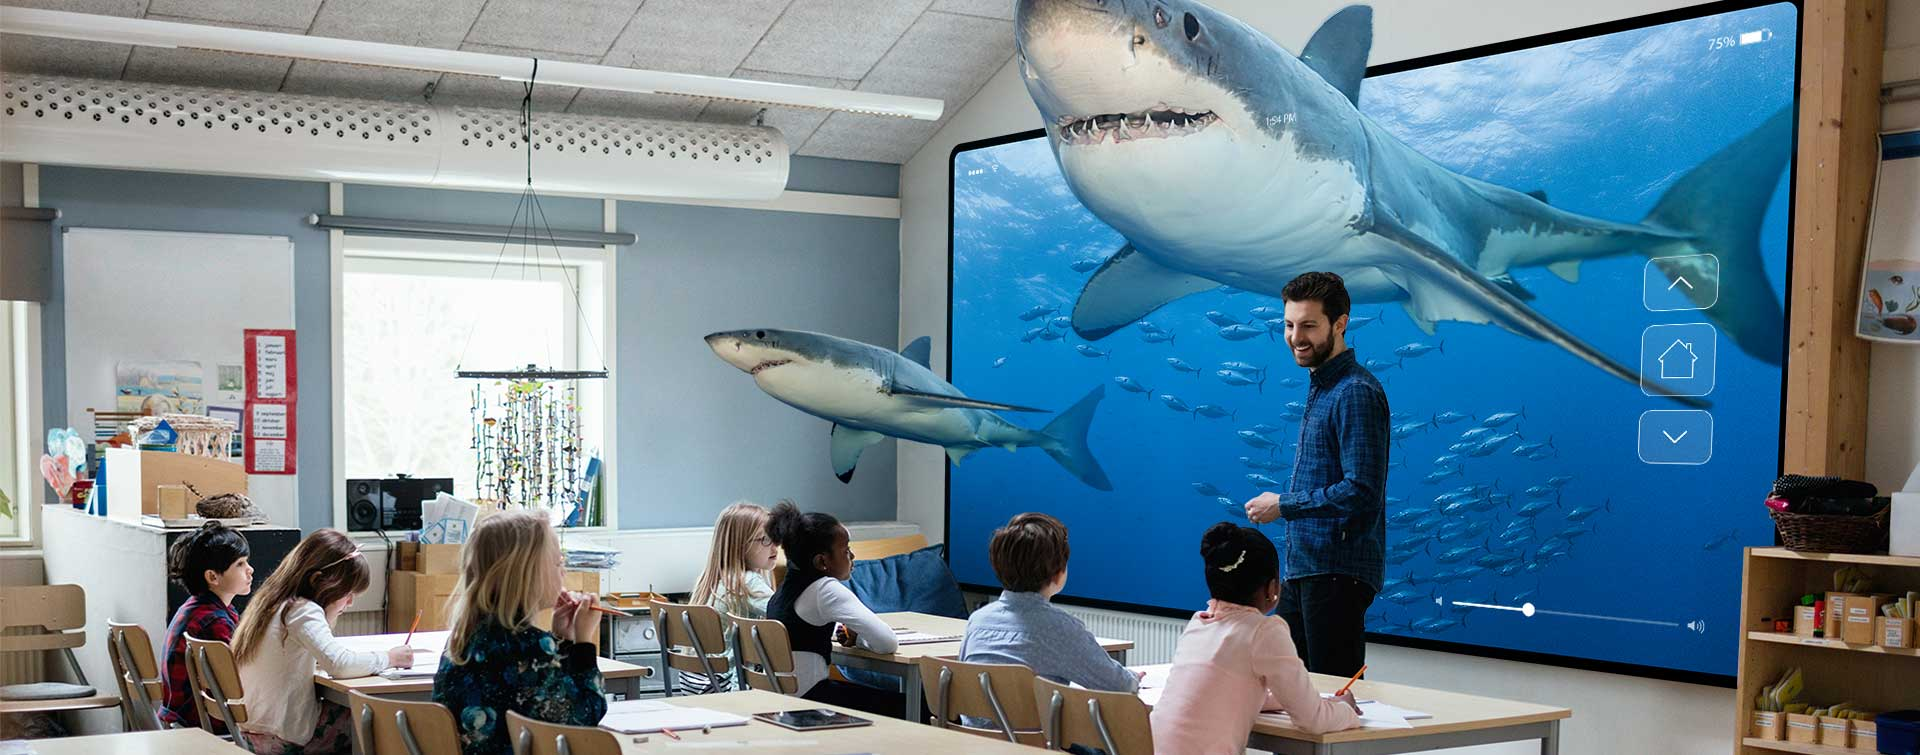 Sharks in classroom with students and teacher